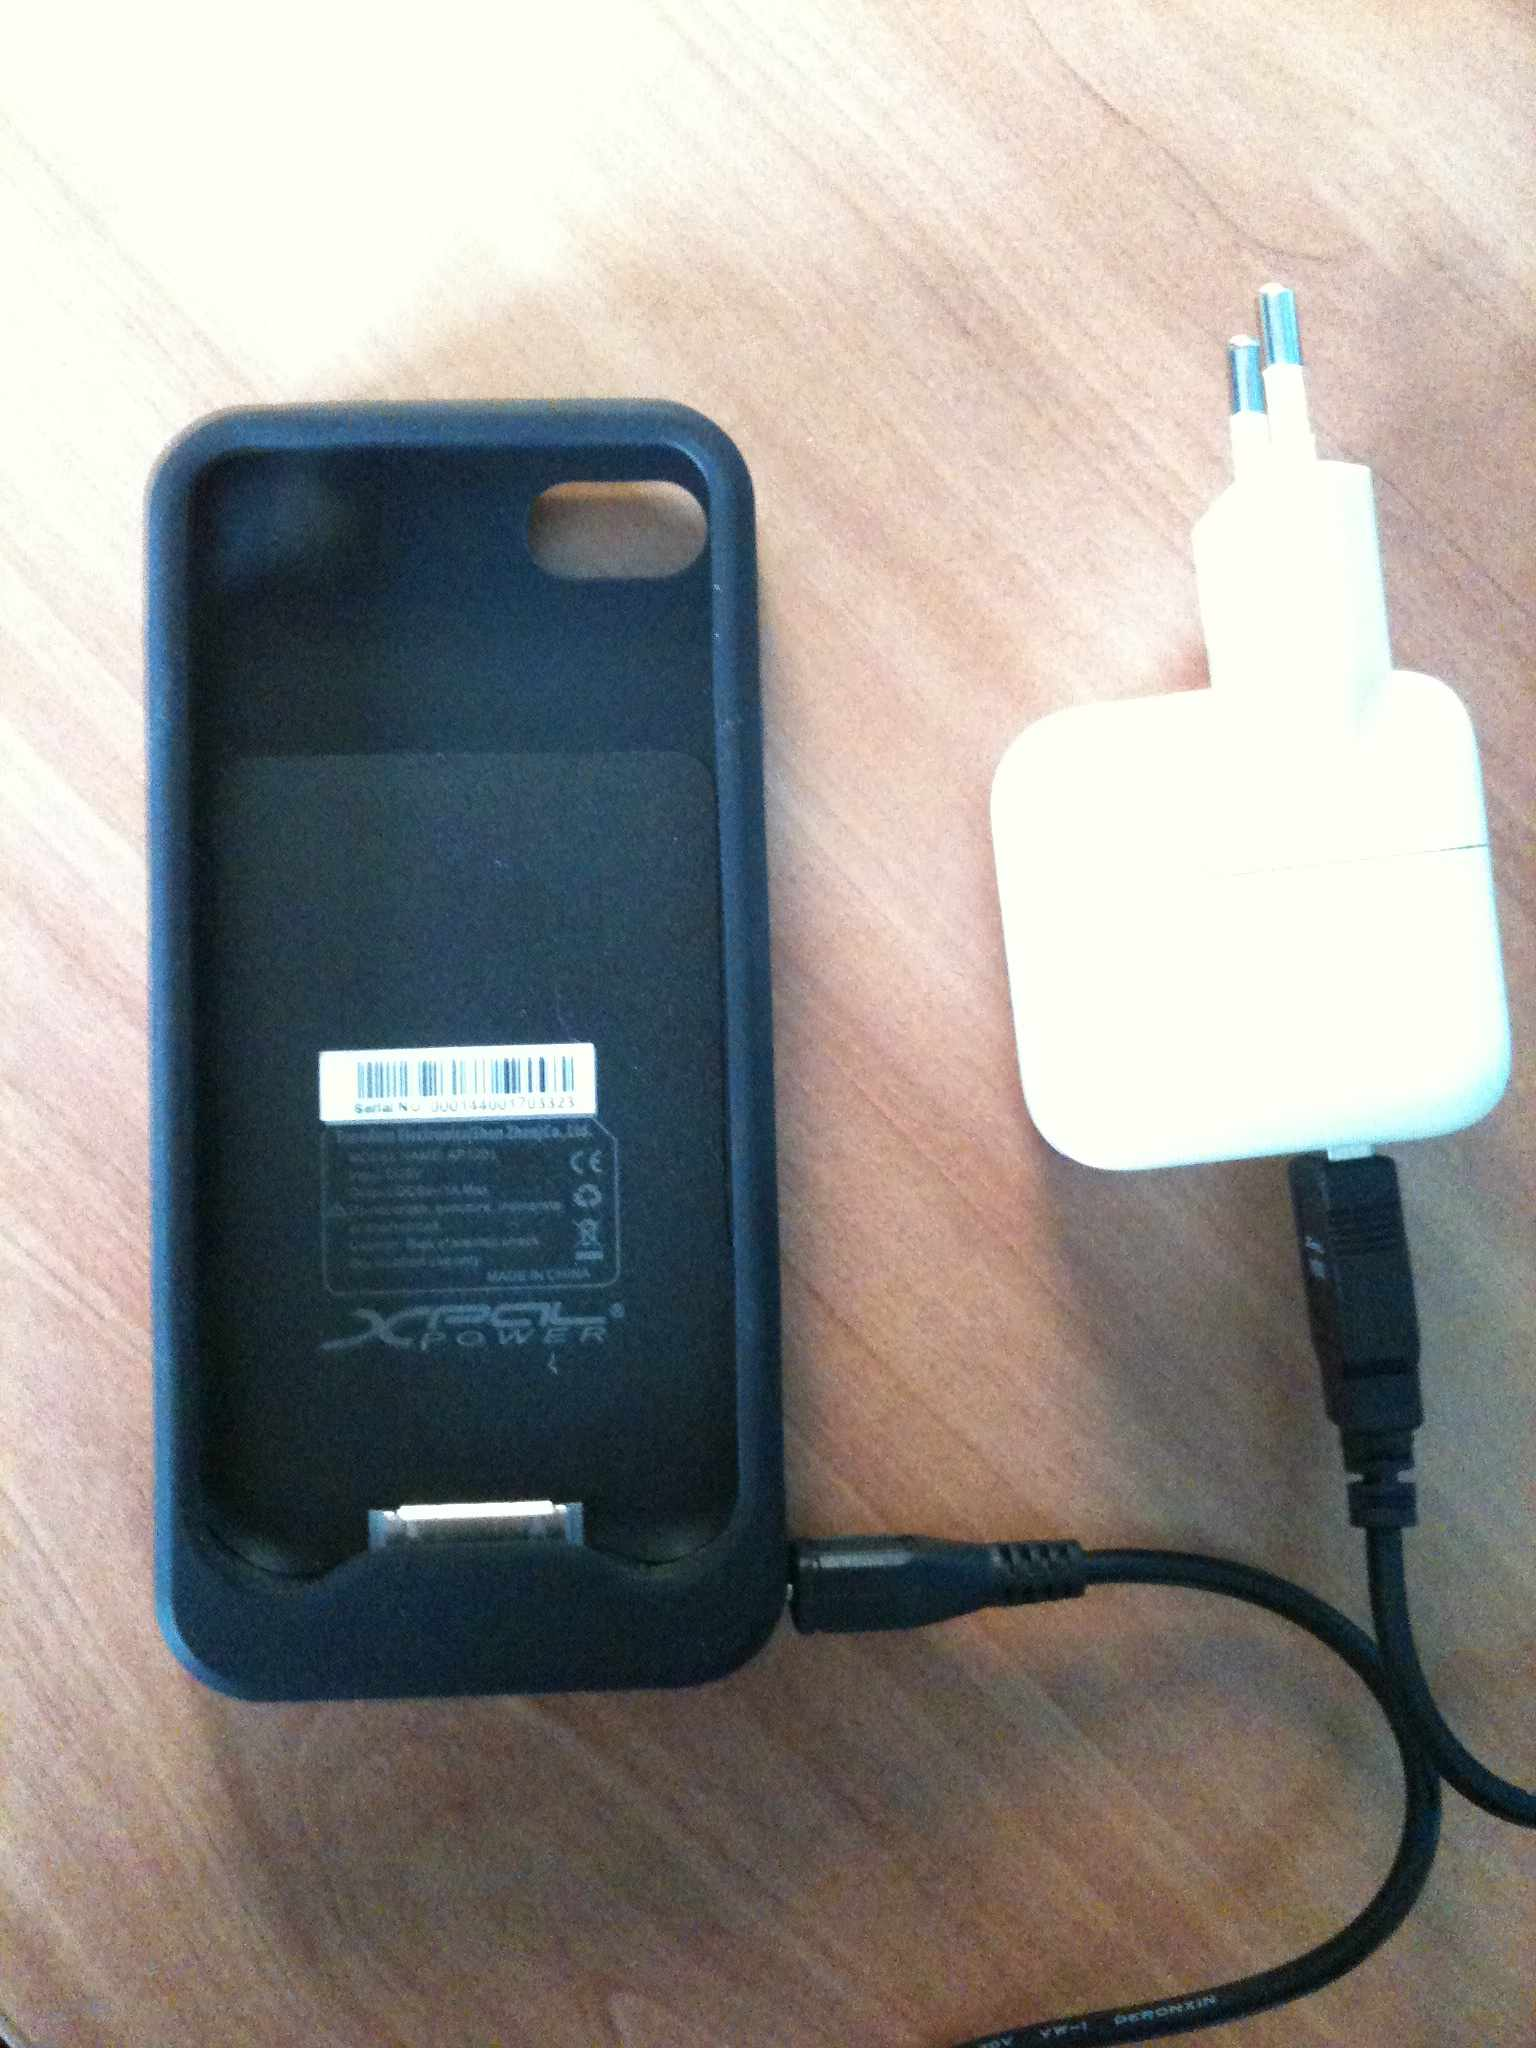 photo 41 - Test : Coque Batterie Energizer pour iPhone 4